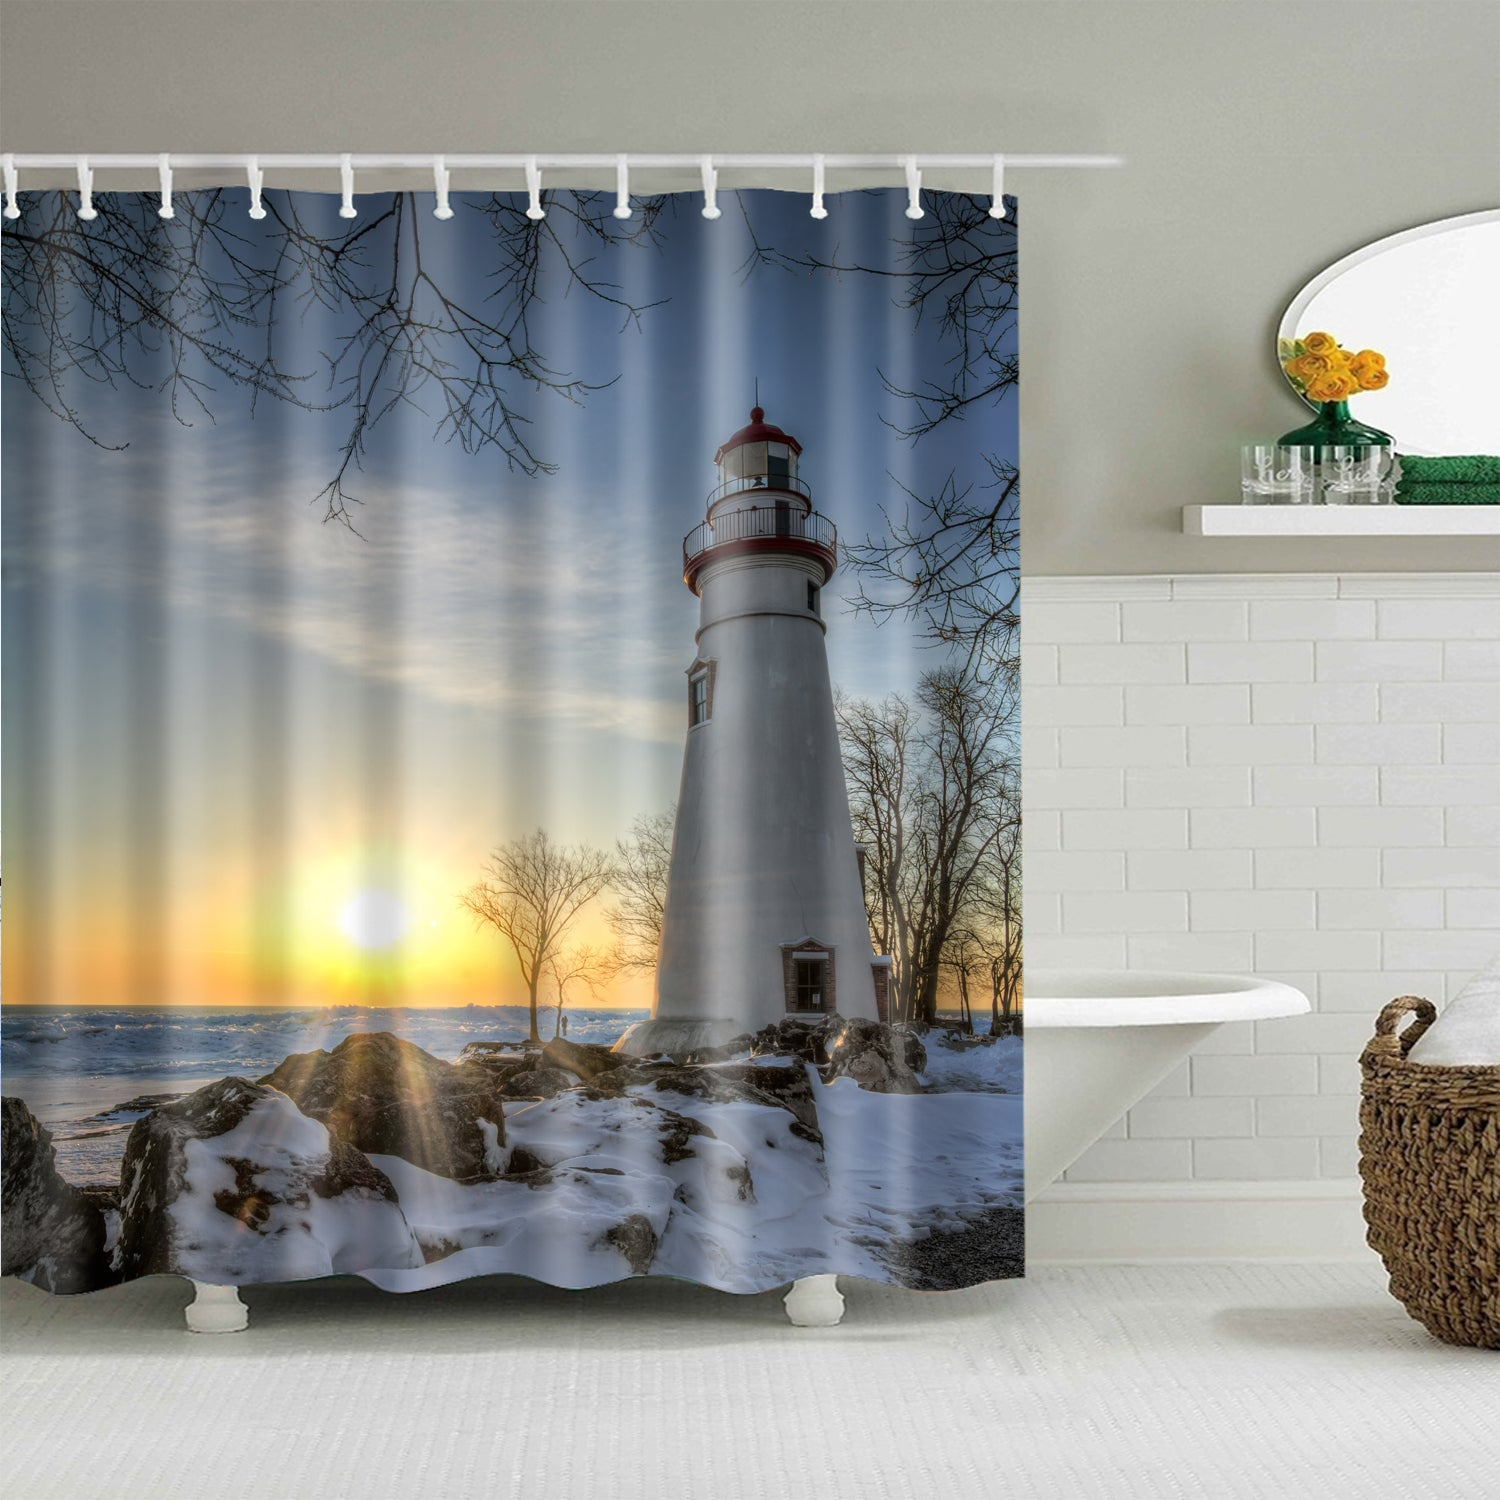 Winter Morning Sun Coast Lighthouse Shower Curtain Bathroom Decor